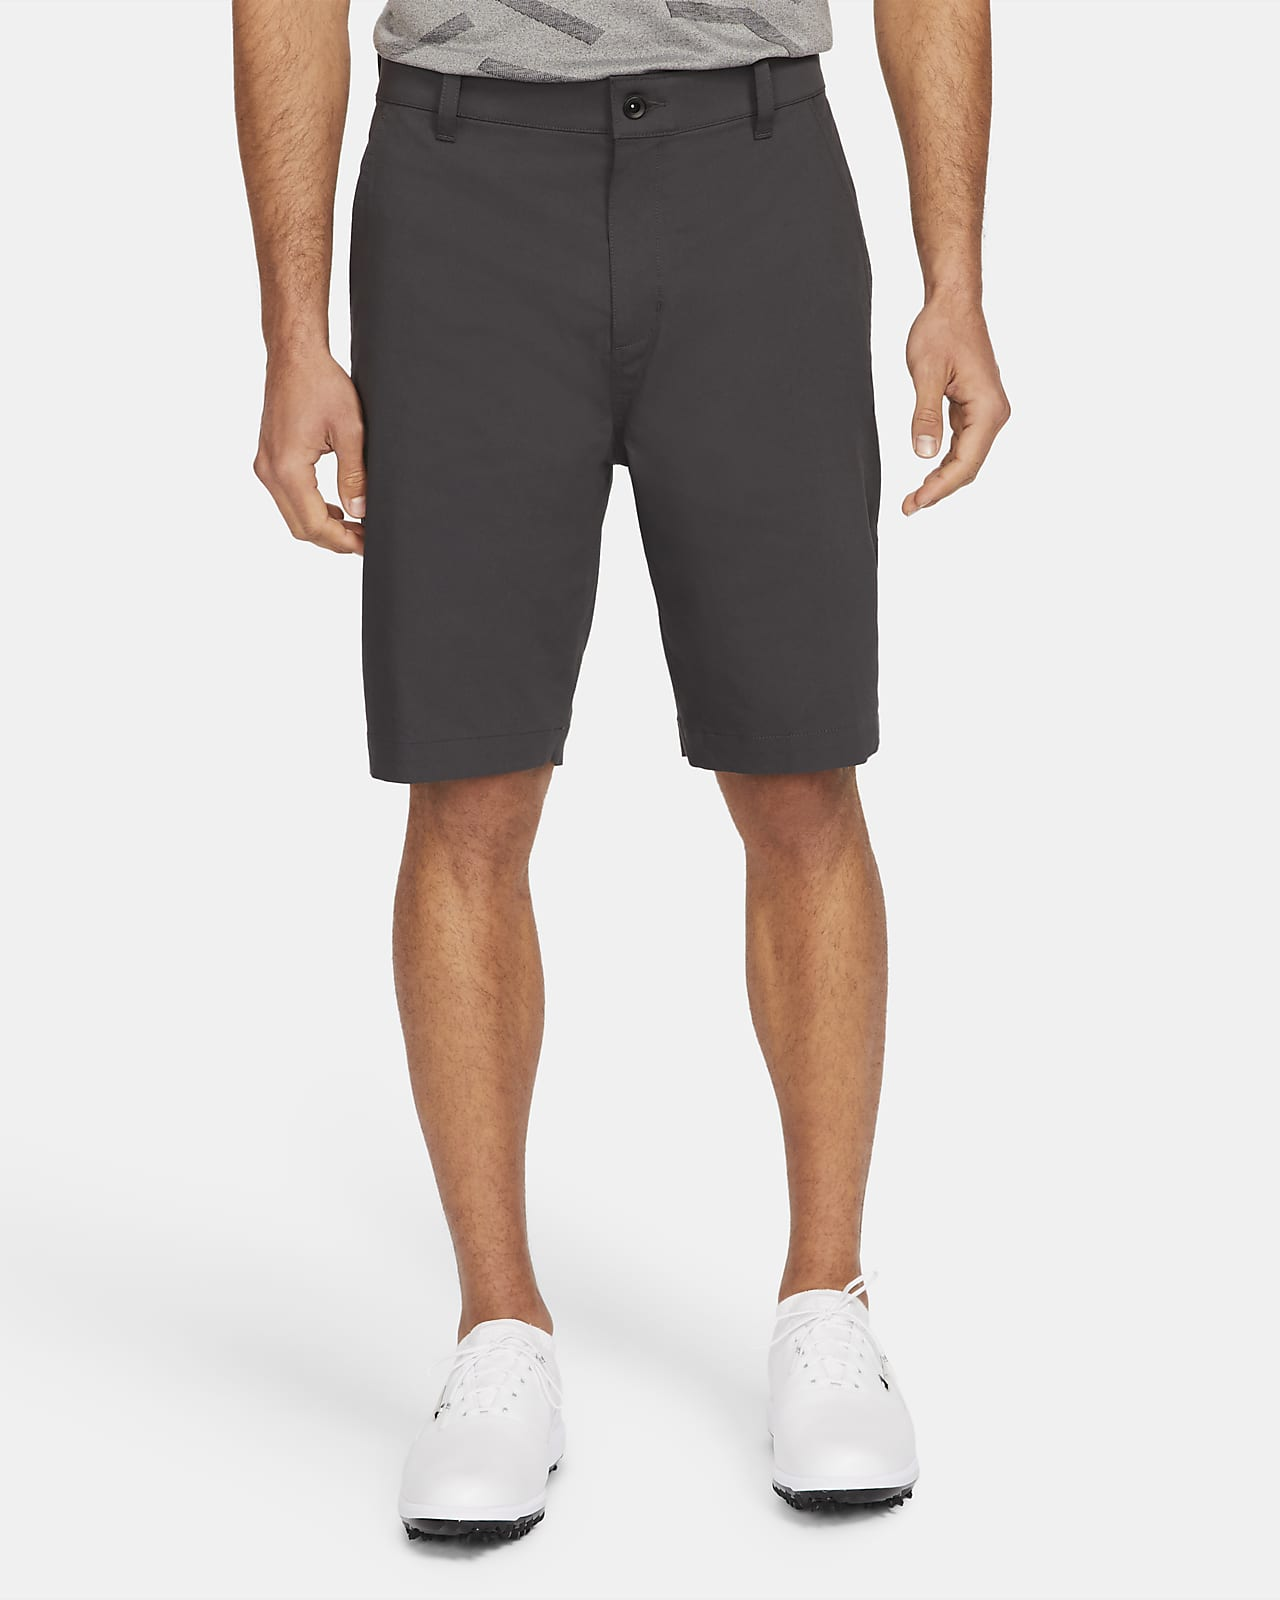 Nike Dri-FIT UV Men's 27cm (approx.) Golf Chino Shorts